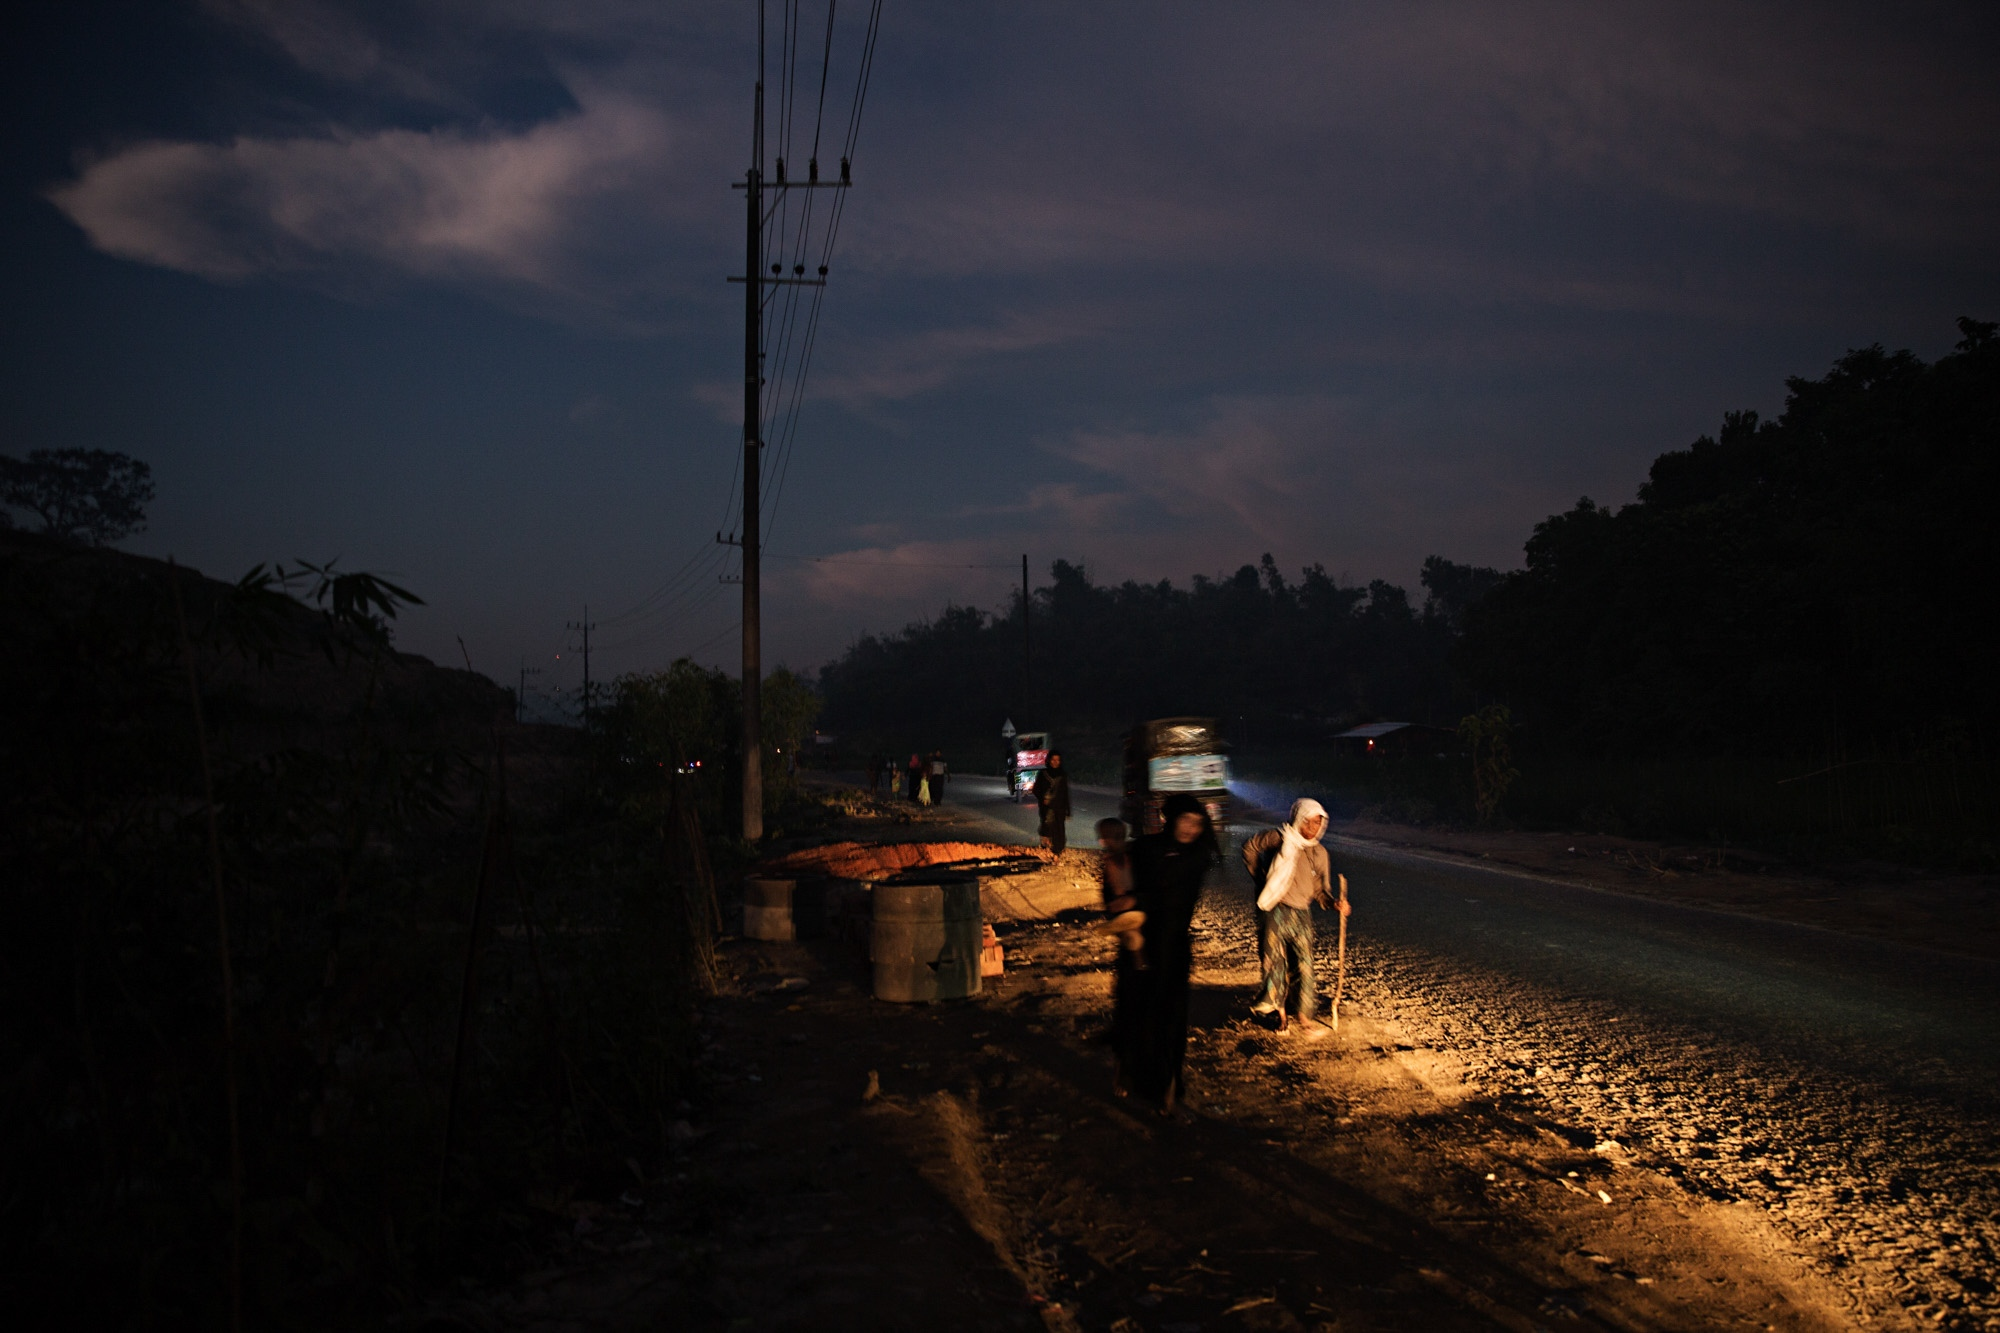 Rohingya refugees make their way along the road next to Balukali camp. The road through the camps experienced heavy traffic and refugees were regularly hit, some fatally so.